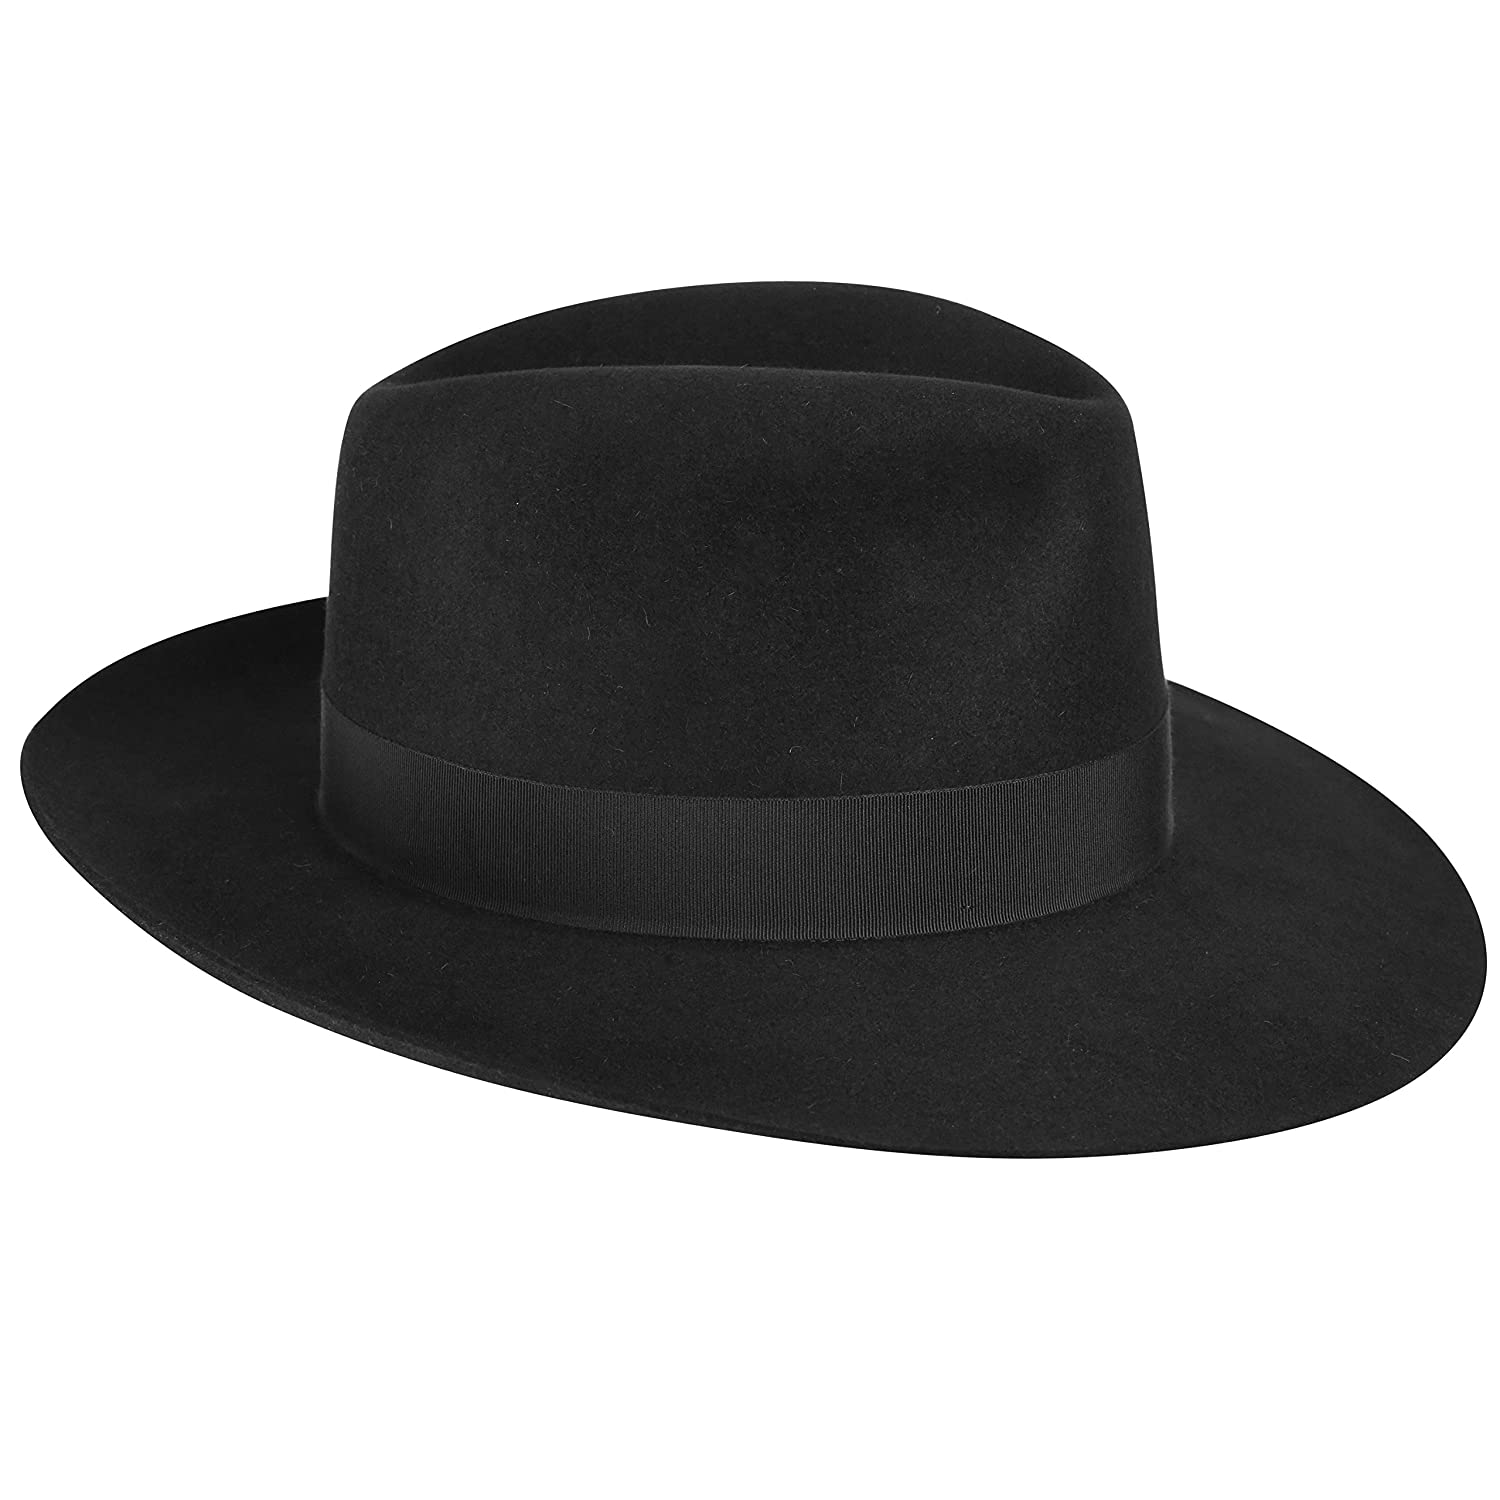 Barbisio Super Fur Felt Fedora